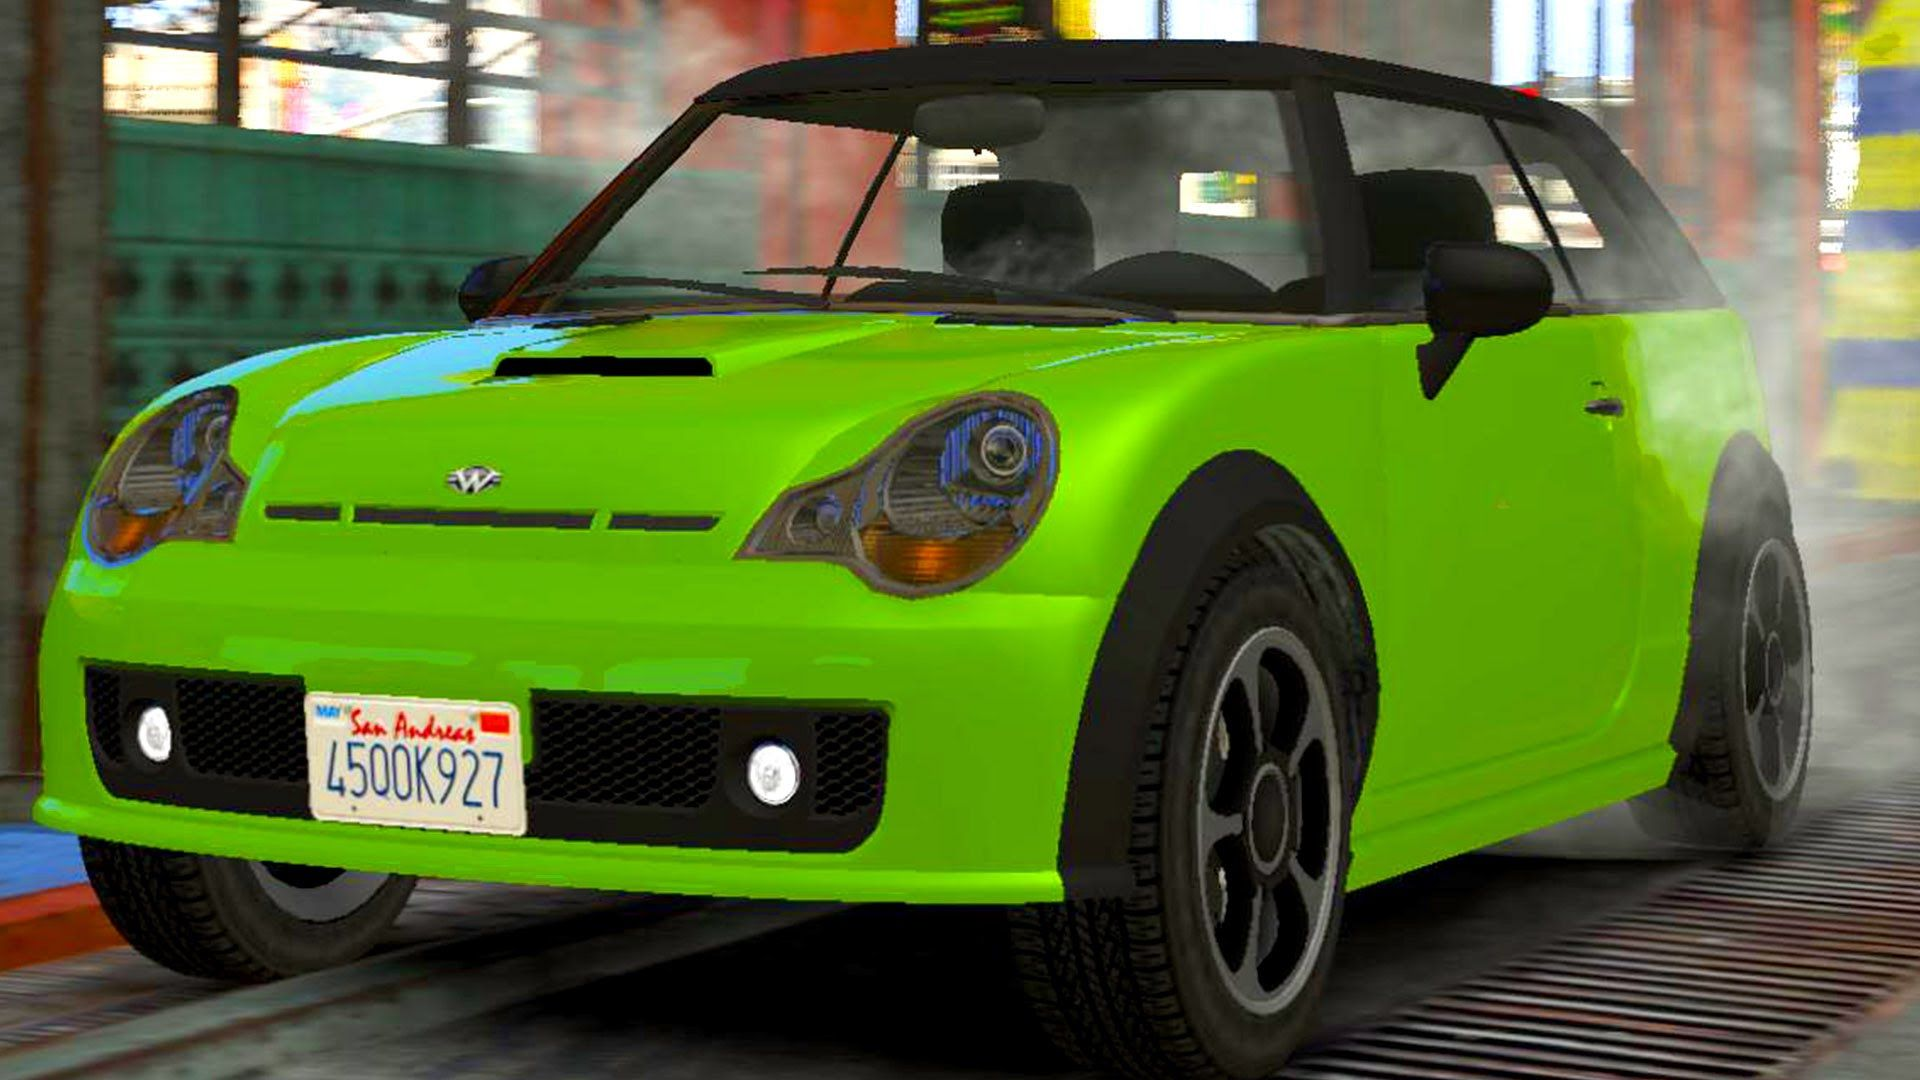 mini cooper convertible car wash videos for childrenrealistic mini cooper car wash compilation for kidsexpensive luxury sports car wash most expe